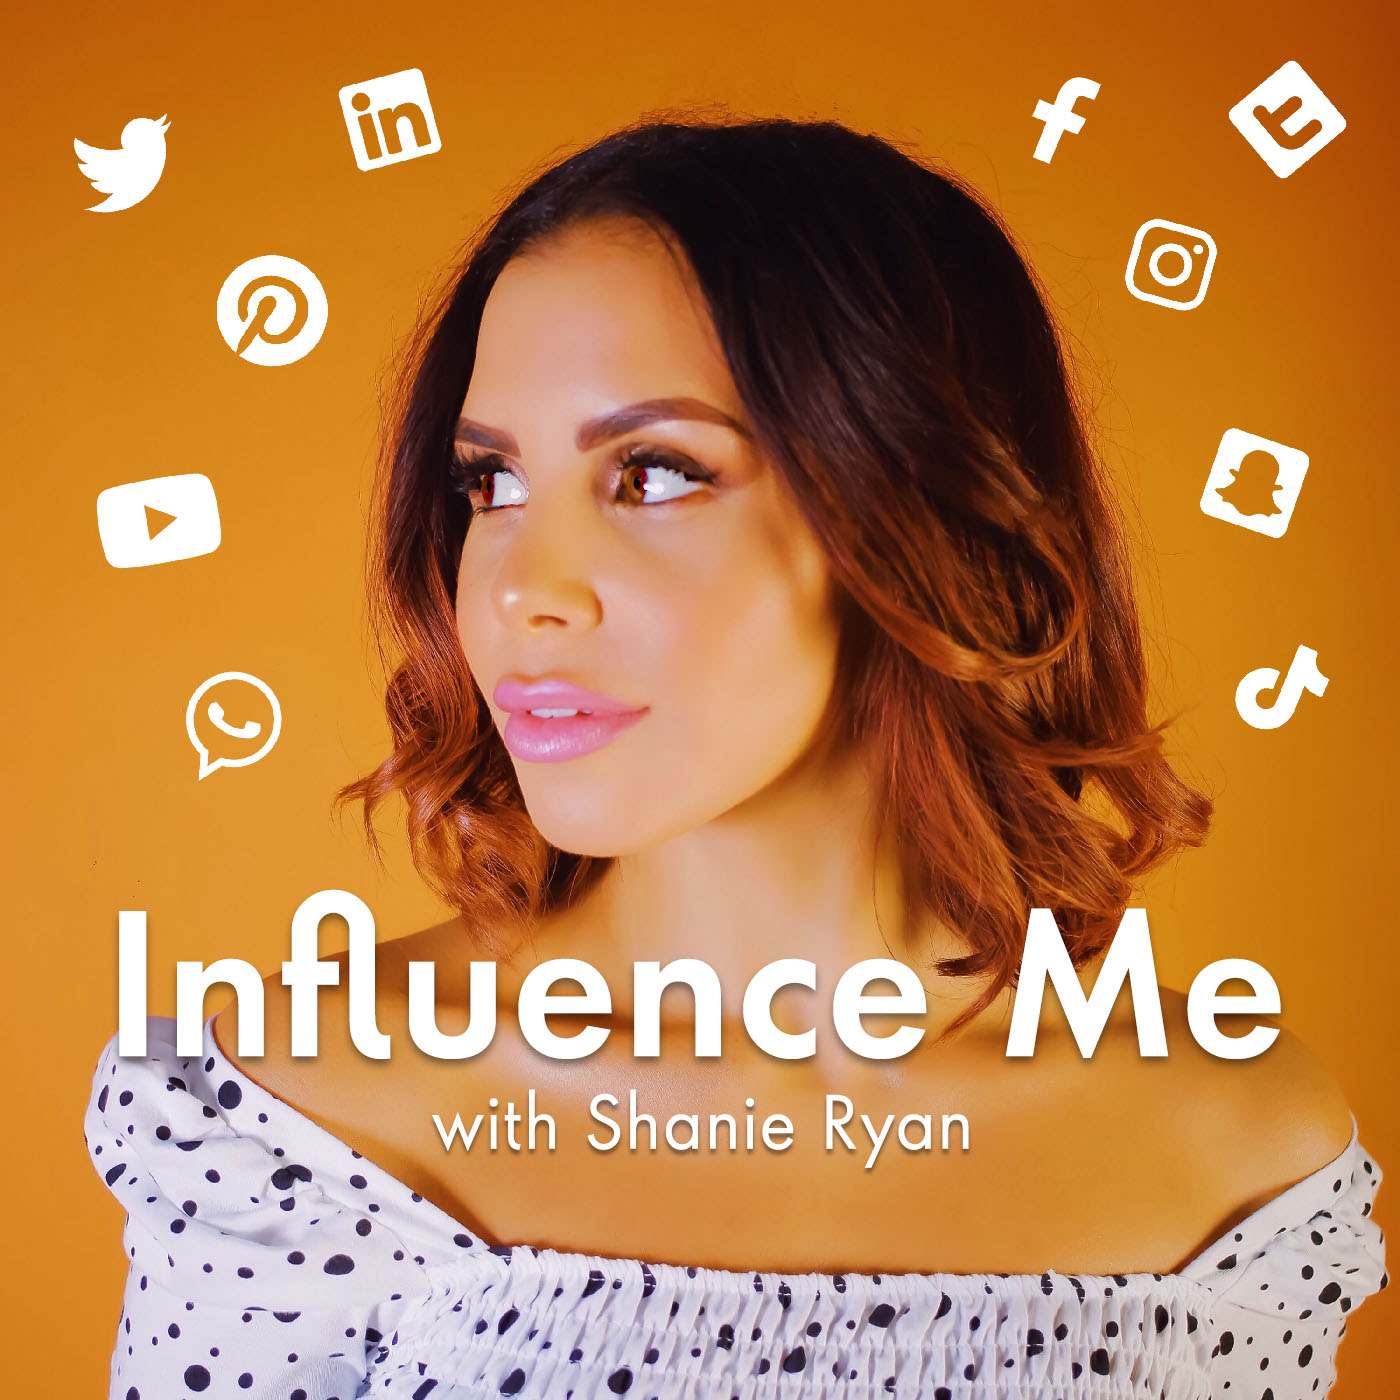 Influence Me - The Trailer